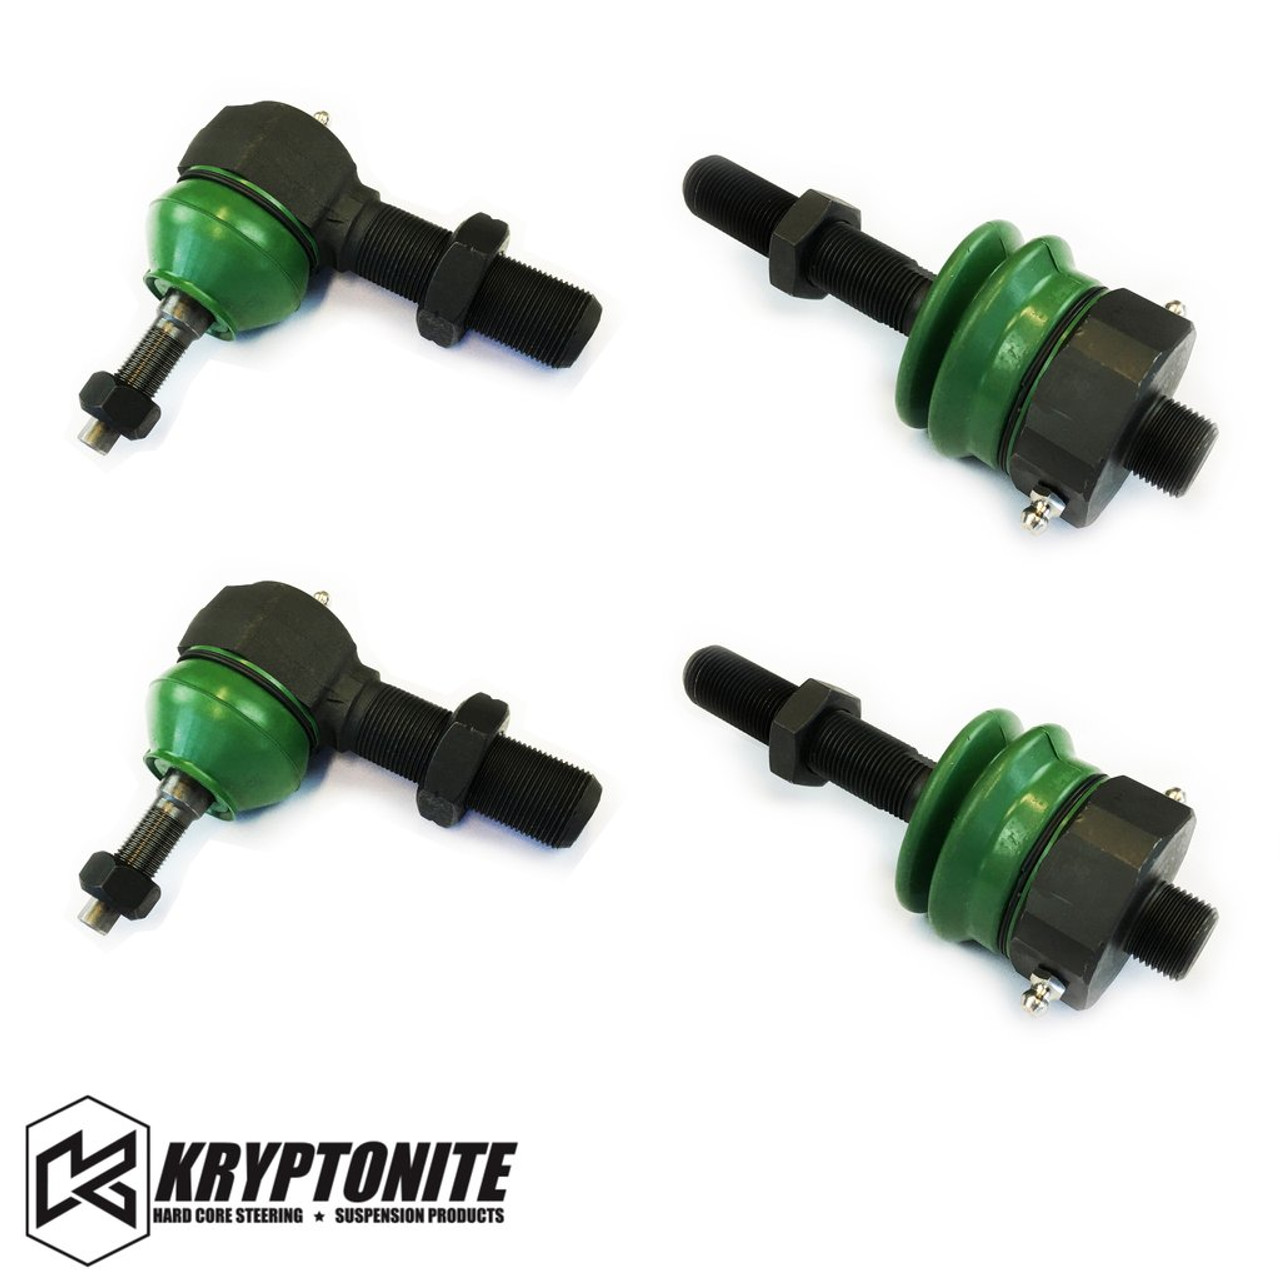 KRYPTONITE TIE ROD REBUILD KIT FOR TIE RODS WITH STOCK CENTER LINK 2011+